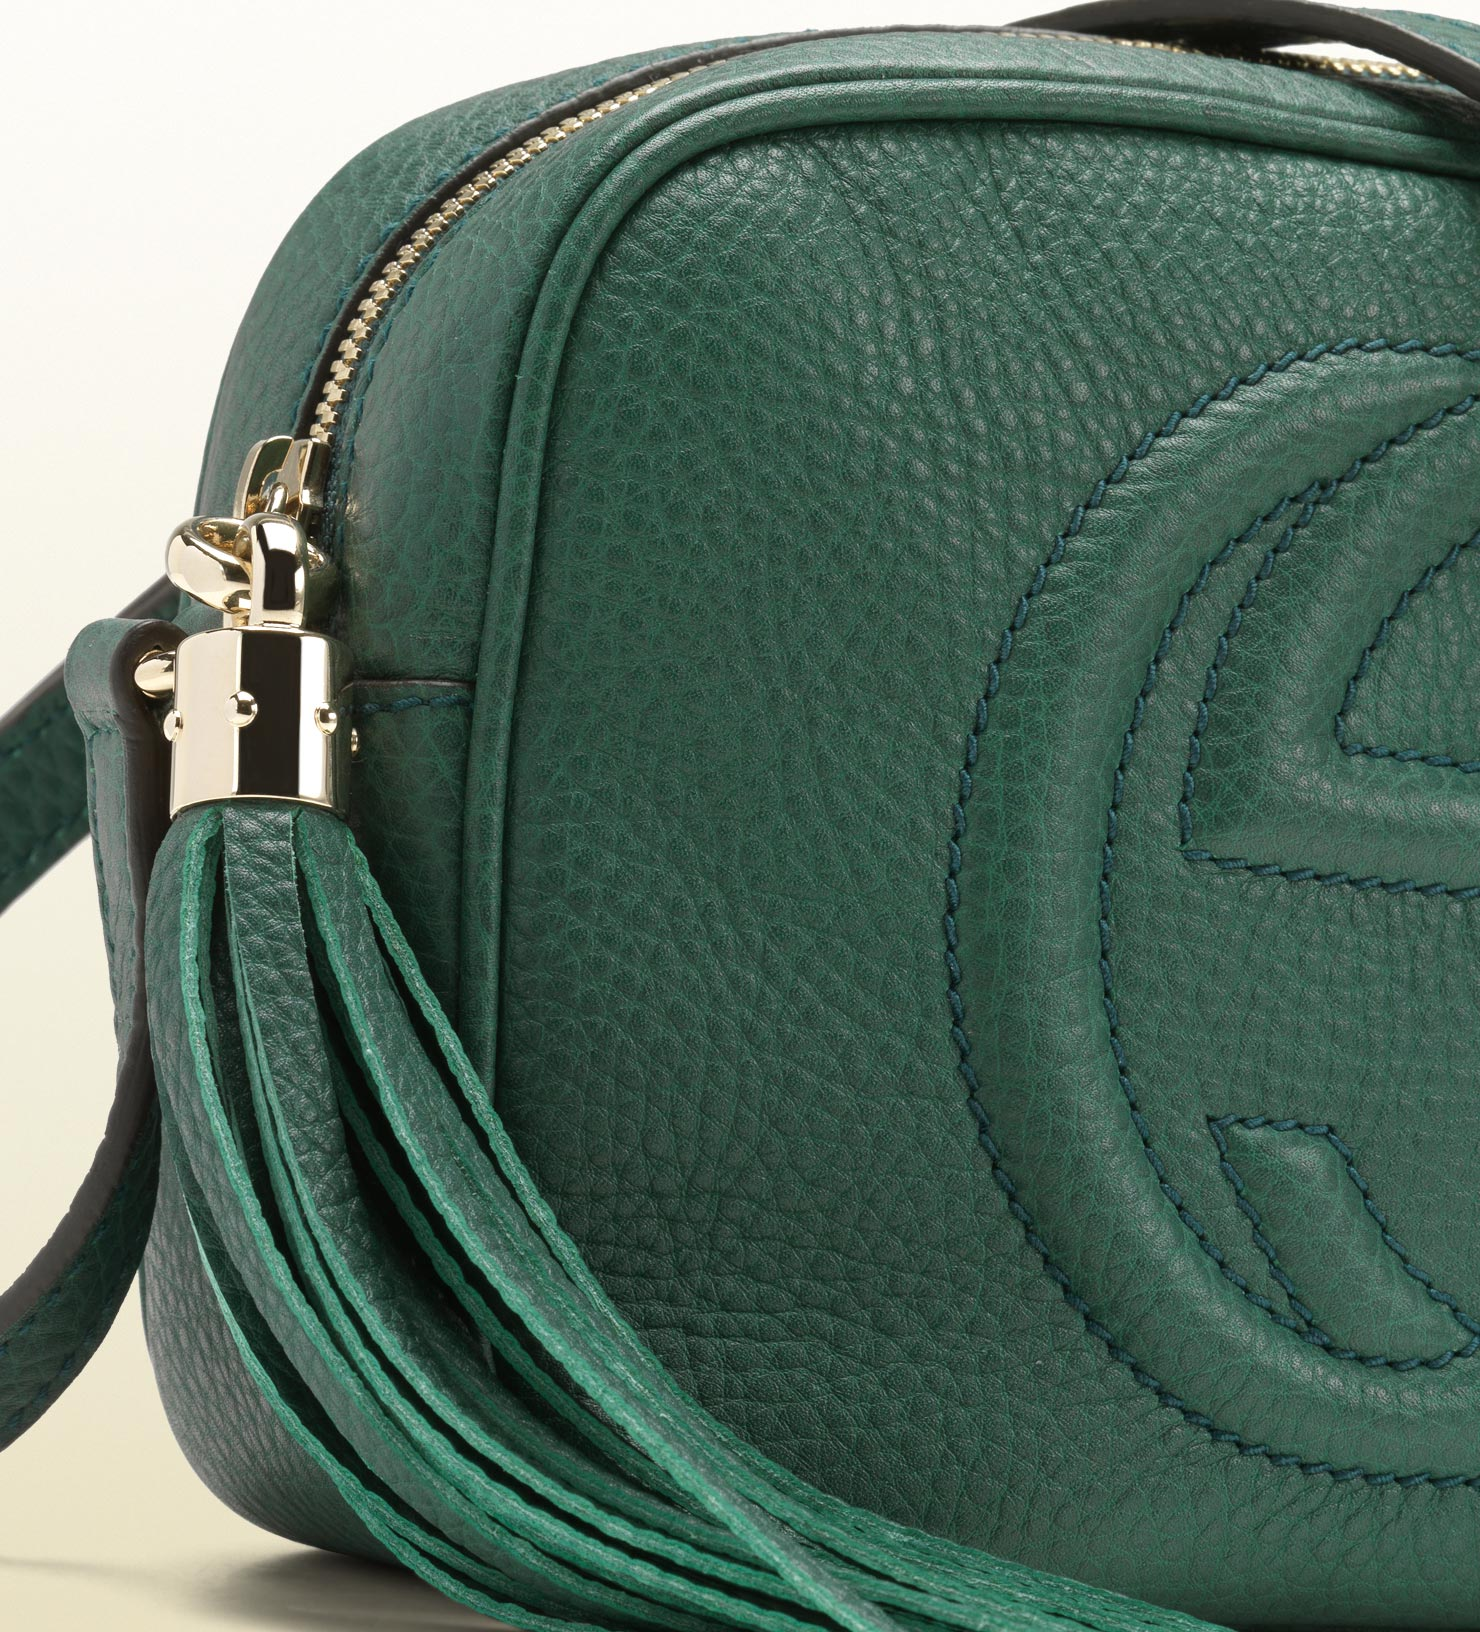 1becf95f4a10 Gucci Soho Disco Bag Green | Stanford Center for Opportunity Policy ...